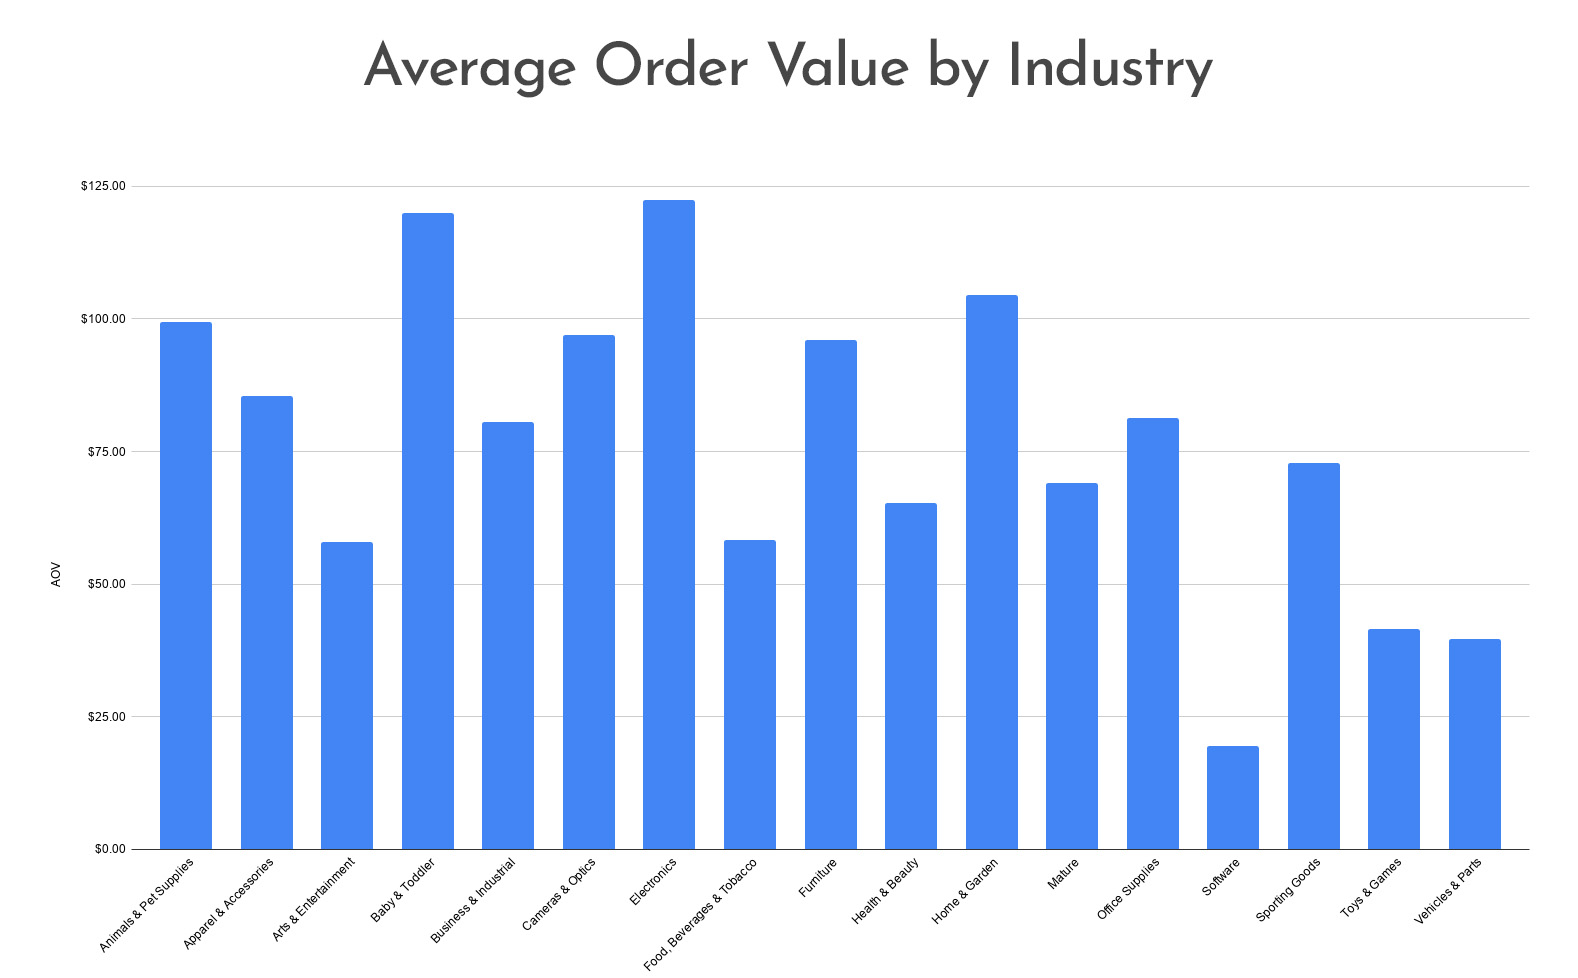 Average Order Value By Industry